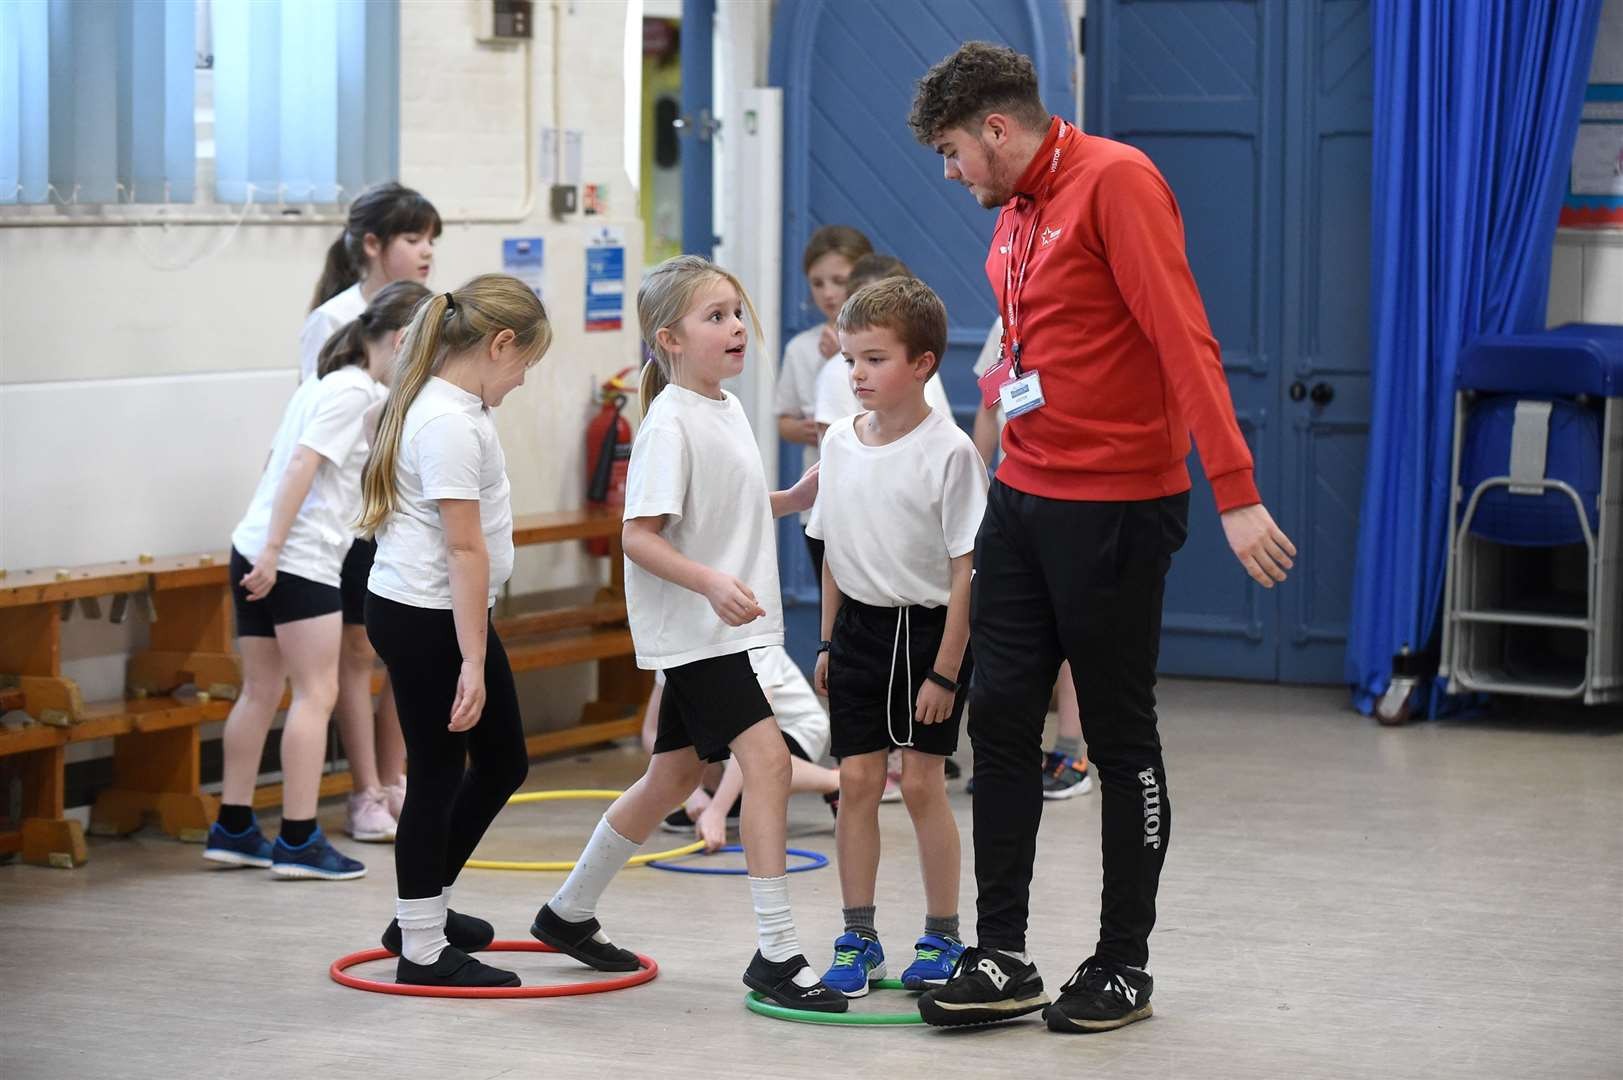 Glemsford Primary Academy staged a sports themed event to encourage youngsters to keep fit...PICTURE: Mecha Morton .... (22635380)